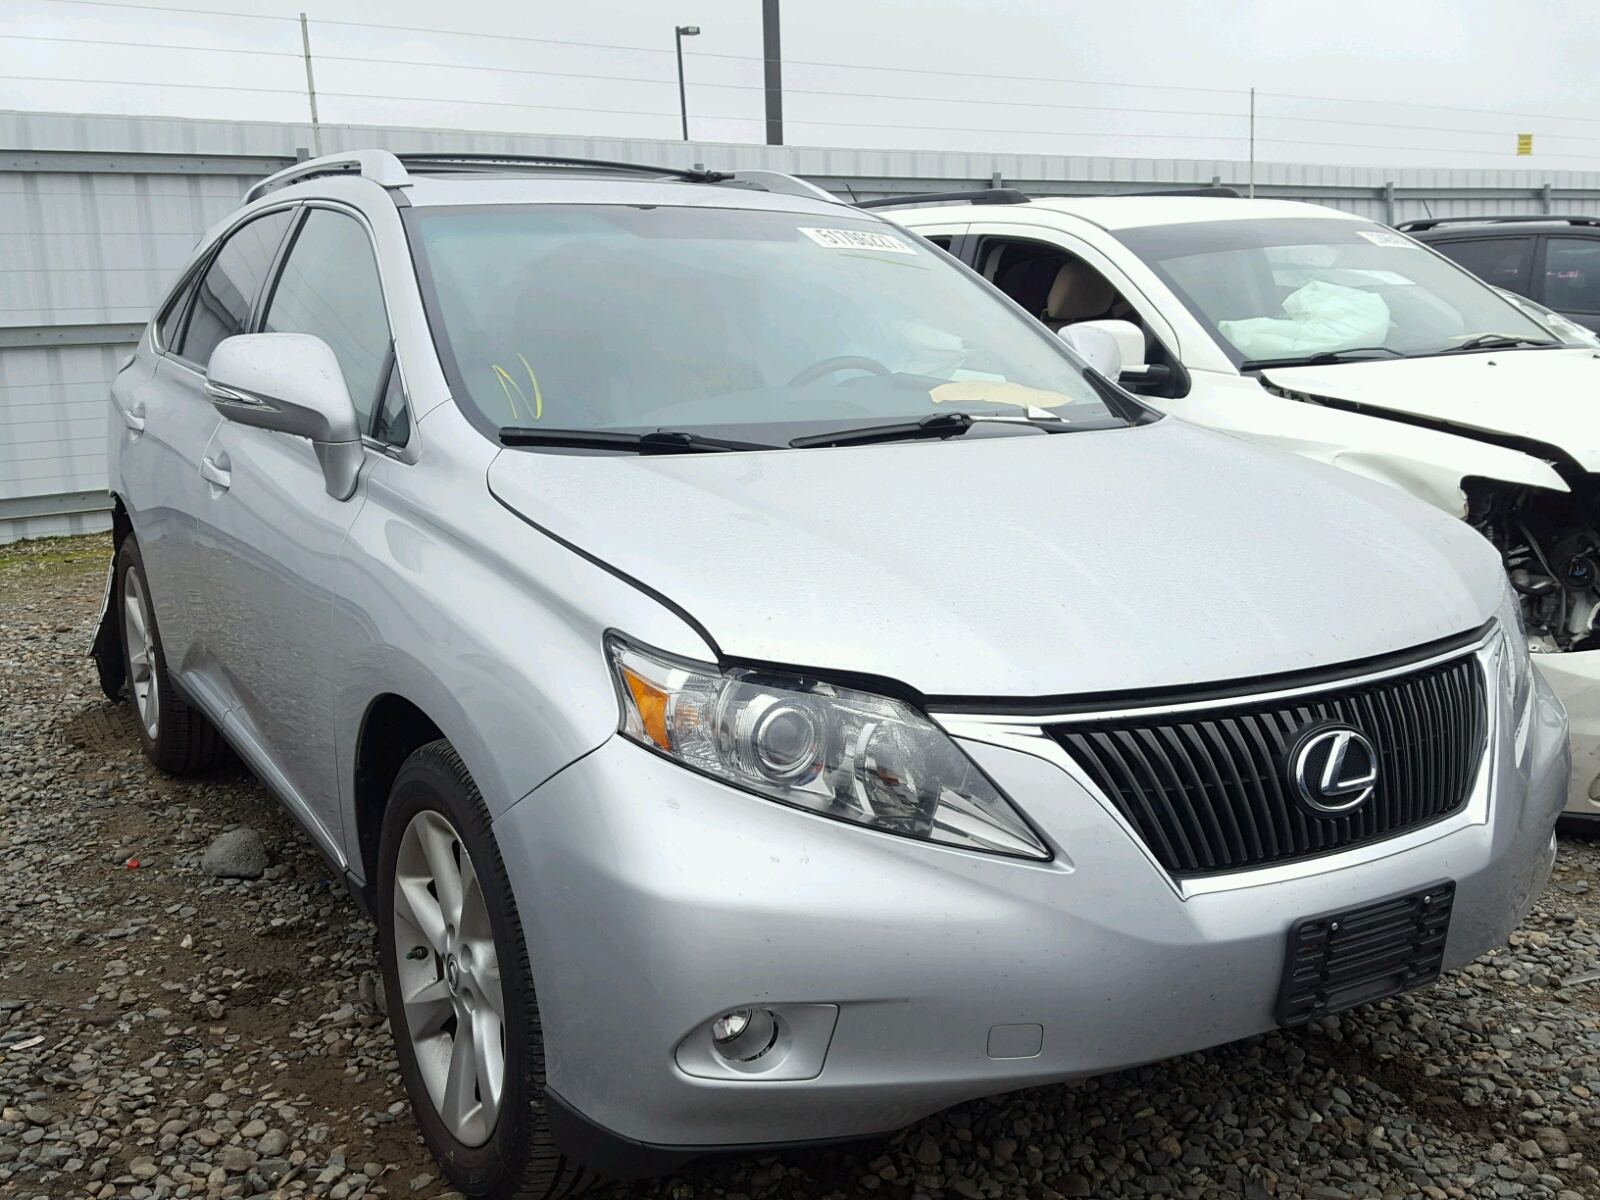 lot auto on pa of harrisburg en ended vin online salvage copart in auction rx certificate carfinder lexus auctions